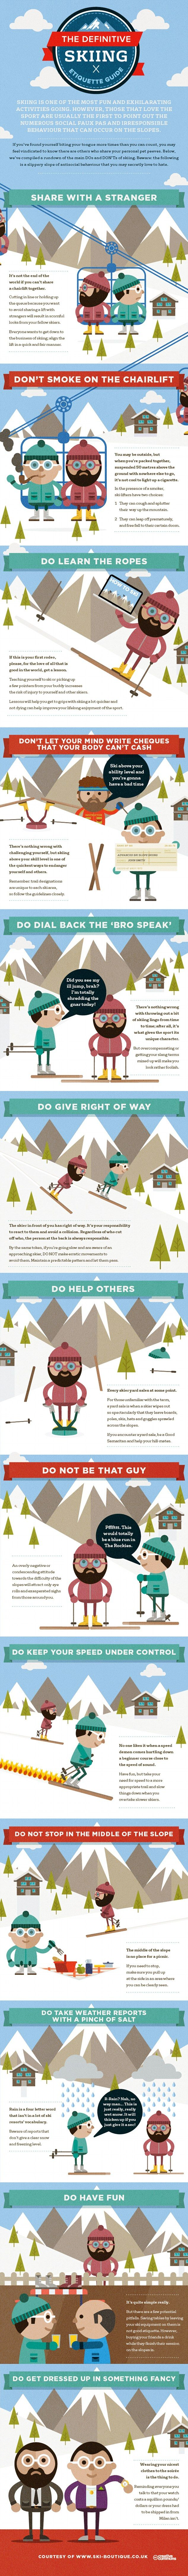 The Do's and Don'ts of Skiing & Snowboarding Etiquette. SkiBoutique, a luxury vacation company located in the Alps, just released a rather hilarious info-graphic on skiing etiquette.